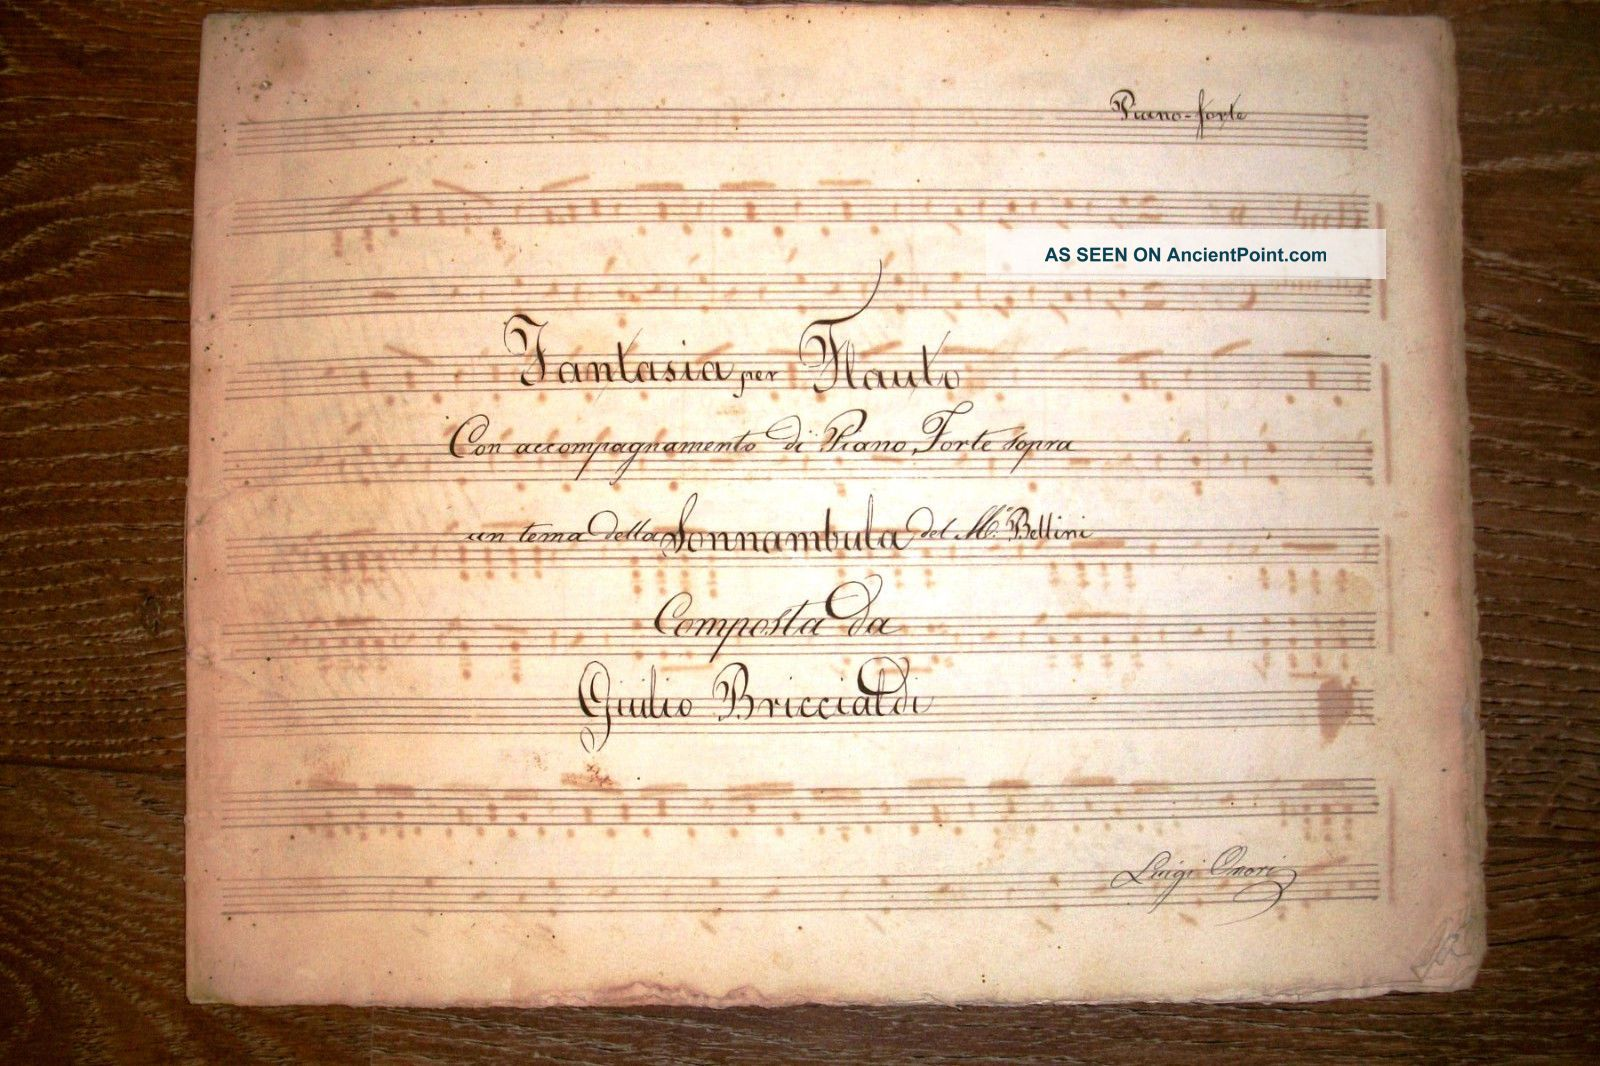 Handwritten Music Score Giulio Briccialdi From